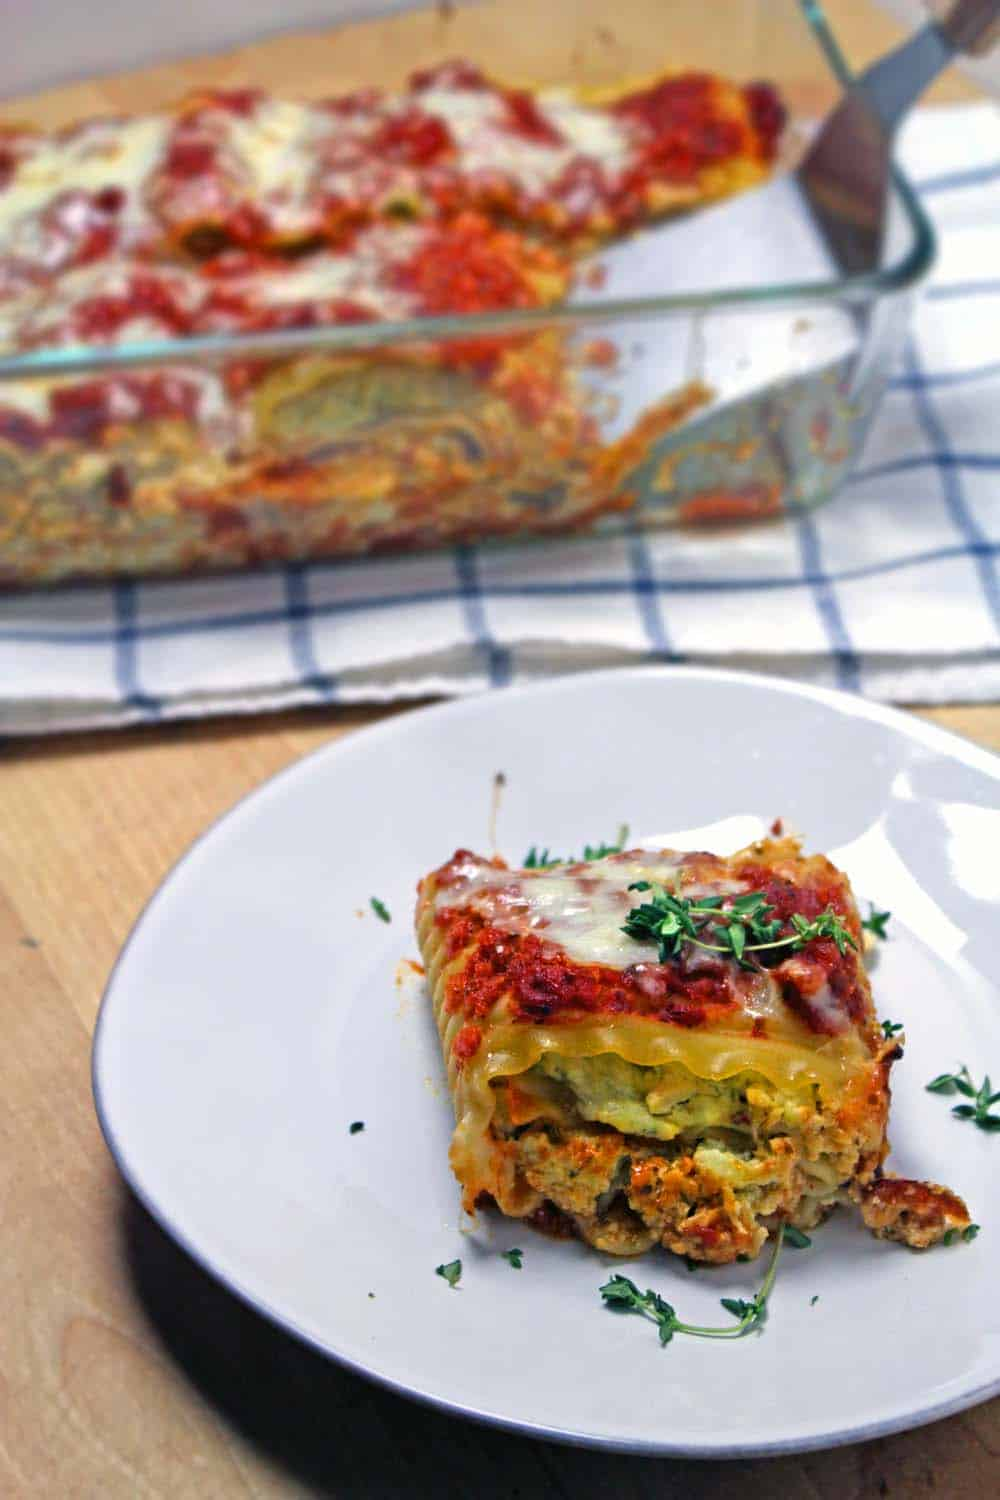 A piece of pesto chicken lasagna roll-up in the foreground on a white plate, with a glass casserole holding the rest of the dish in the background.